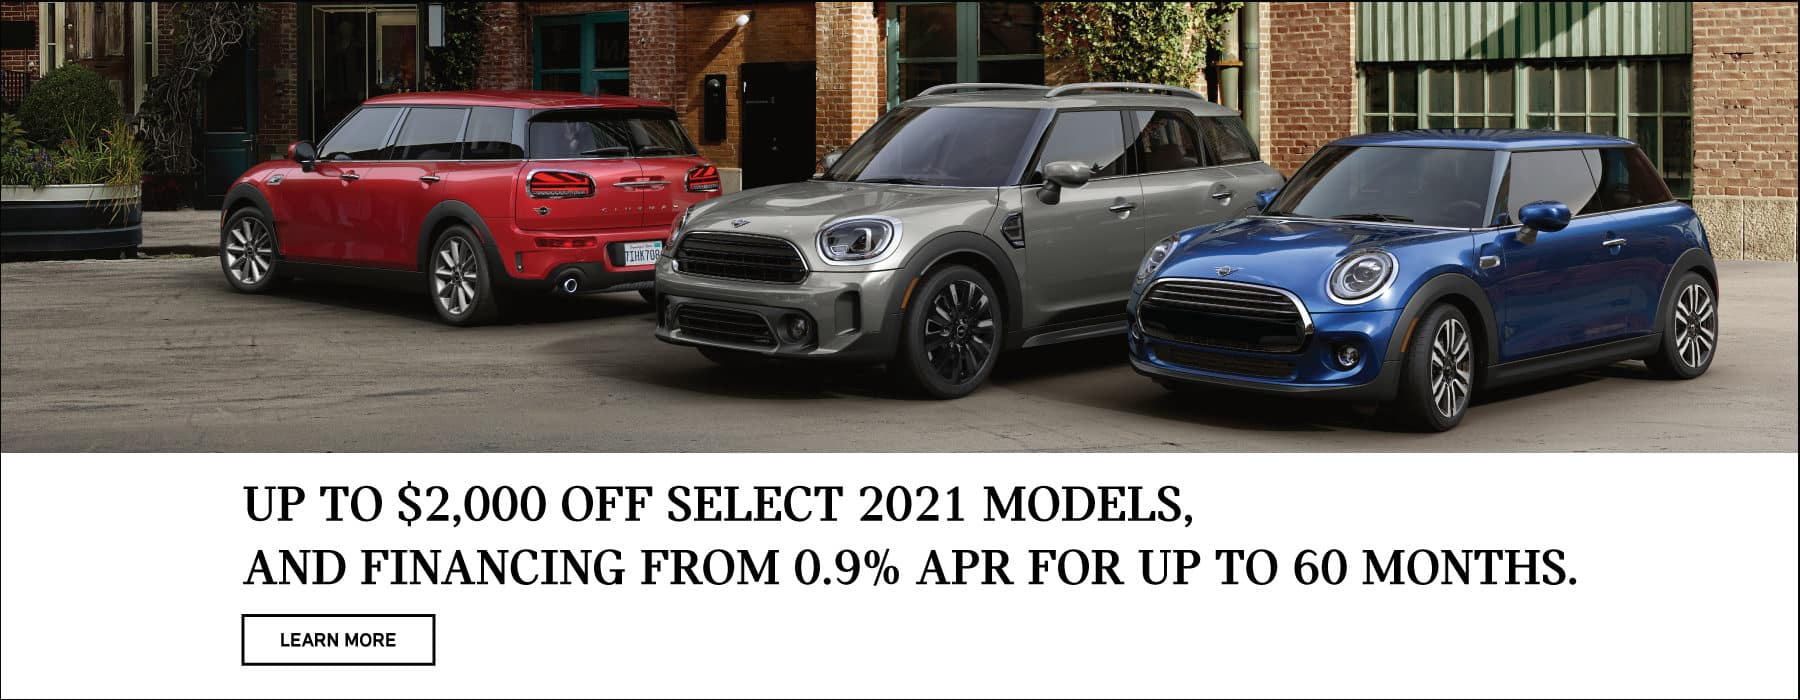 UP TO $2,000 OFF SELECT 2021 MODELS AND FINANCING FROM 0.9% APR FOR UP TO 60 MONTHS. LEARN MORE BUTTON.